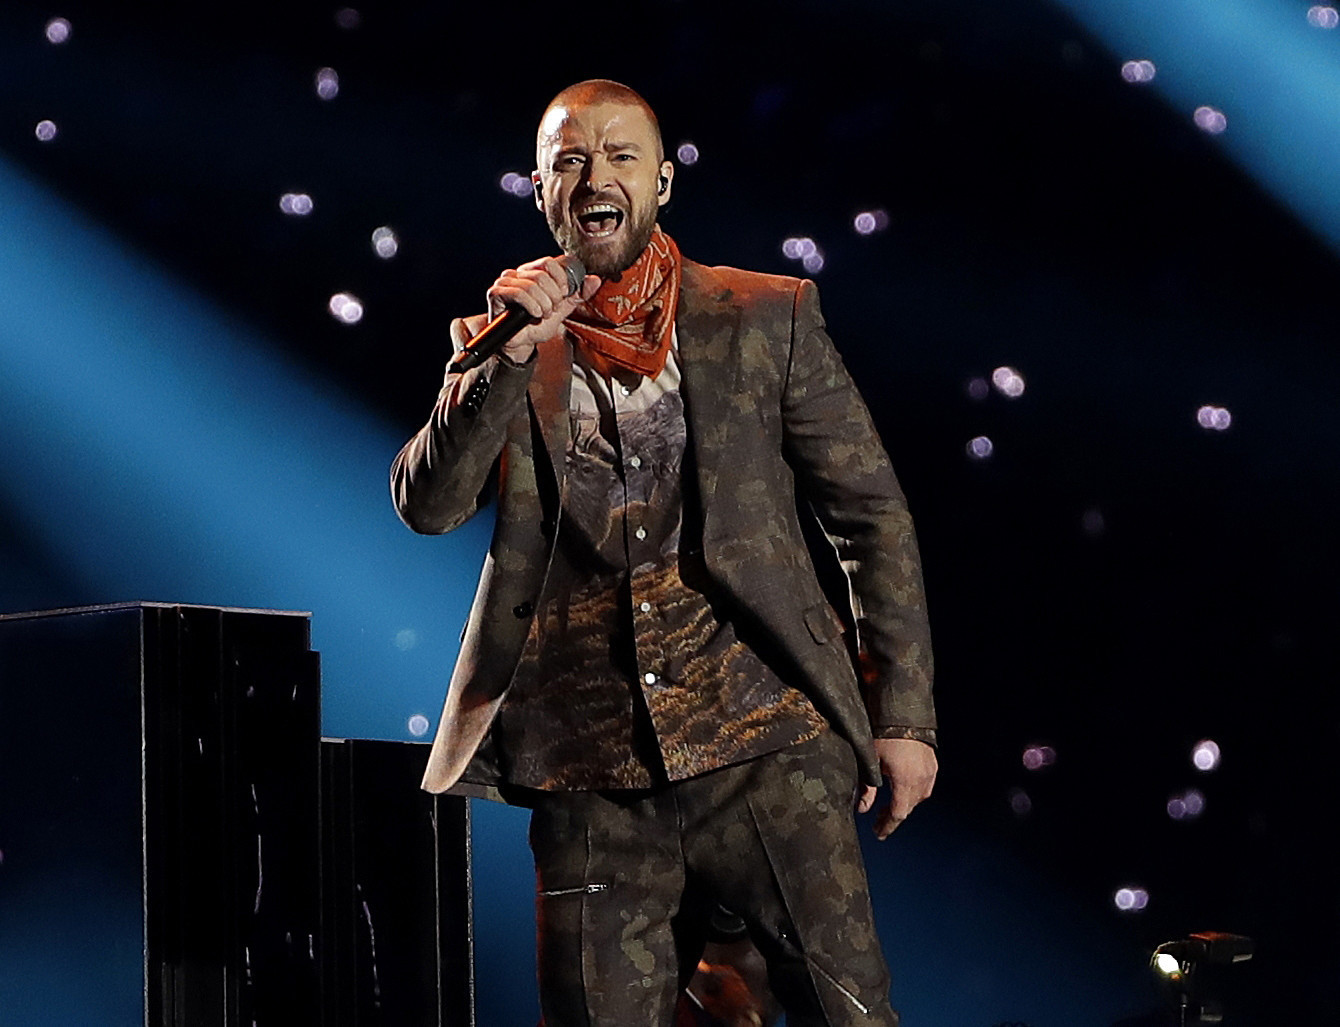 In San Diego, a confident Justin Timberlake shows he's still got the swagger